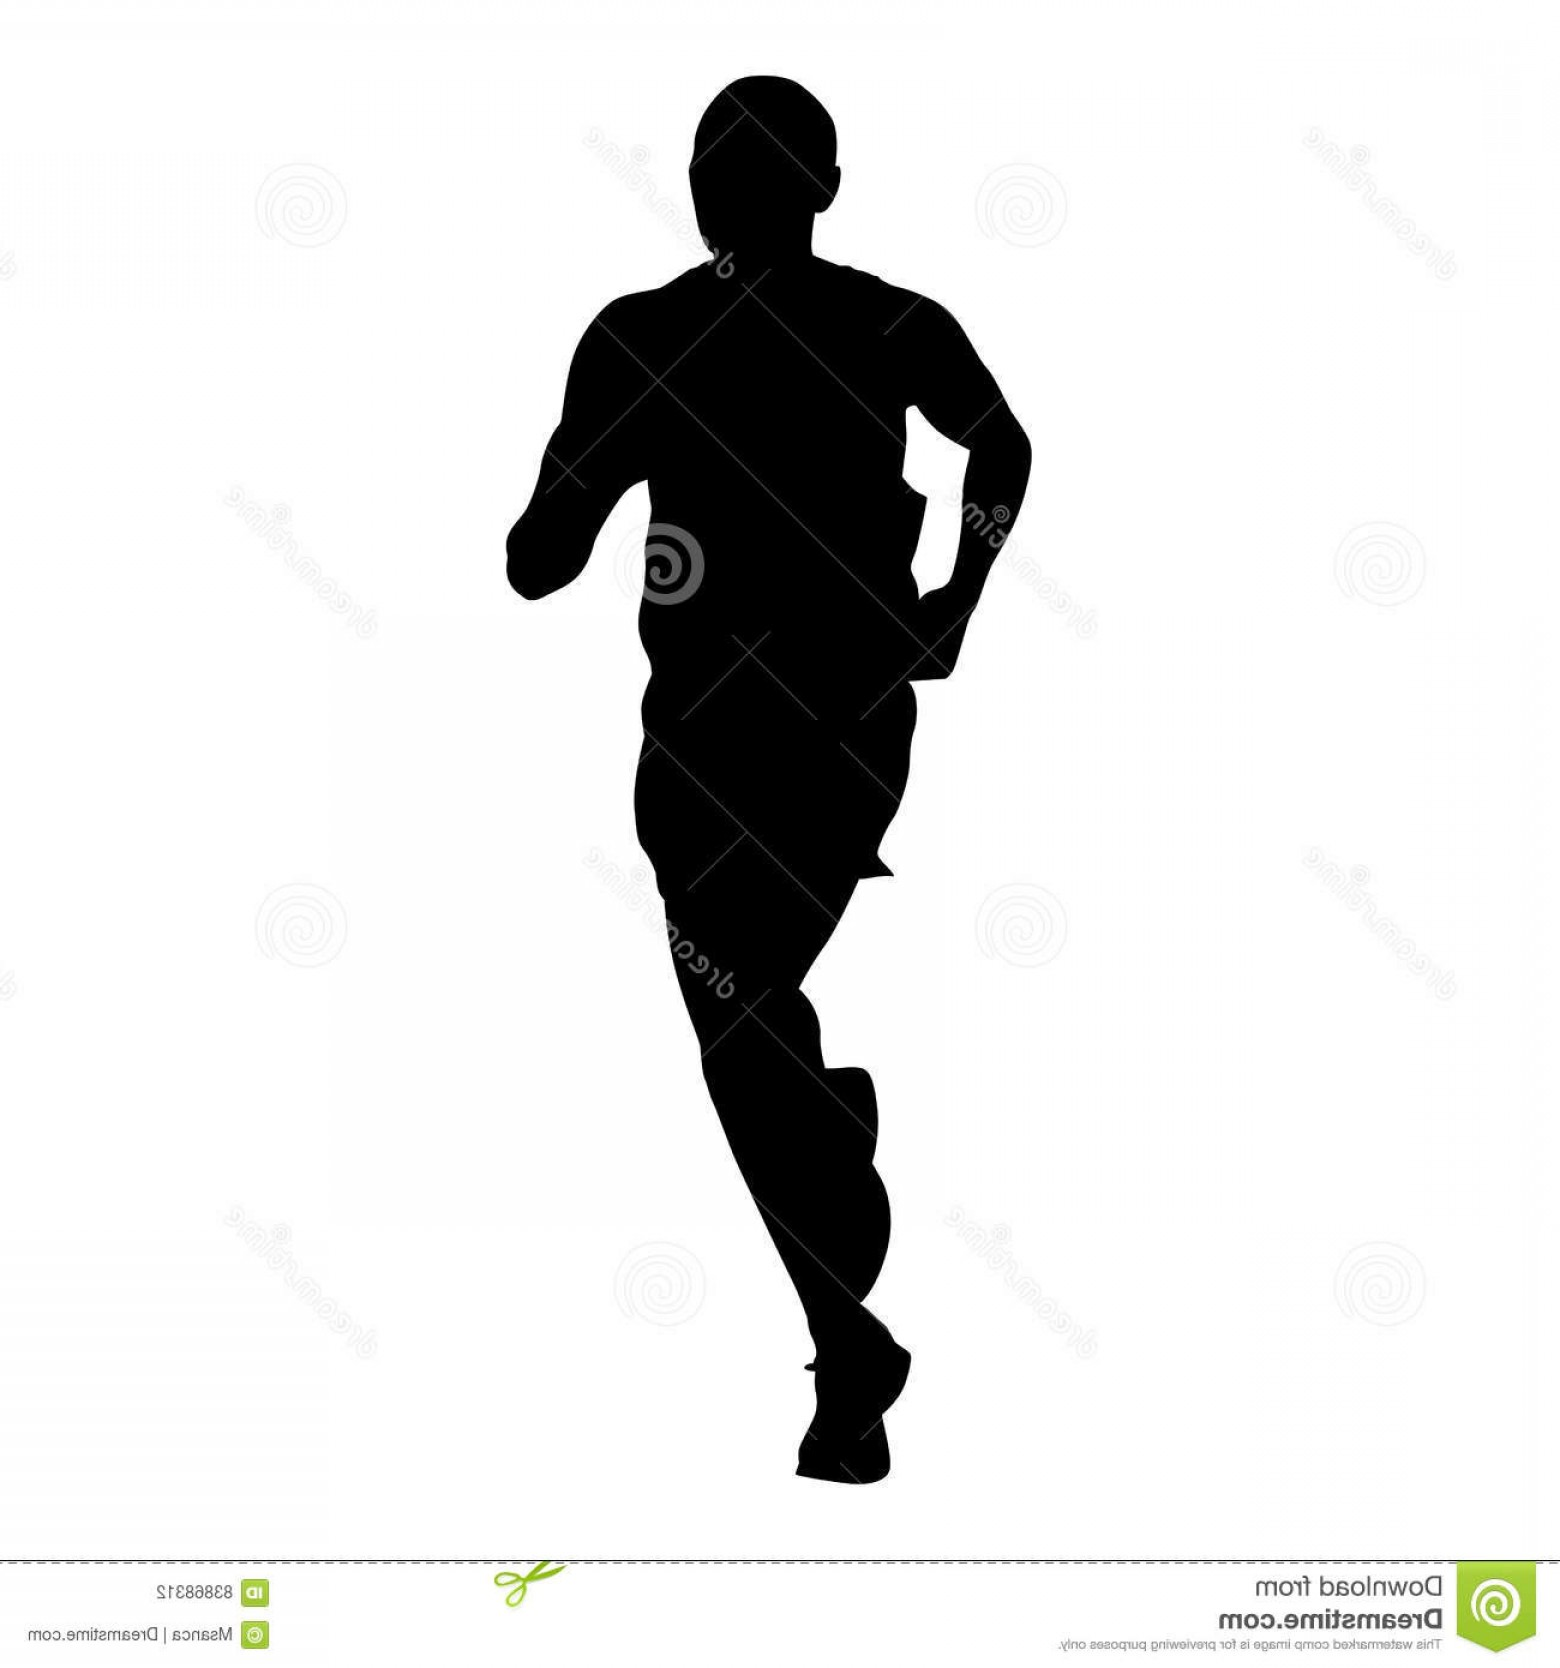 1560x1668 Stock Illustration Marathon Runner Athlete Vector Silhouette